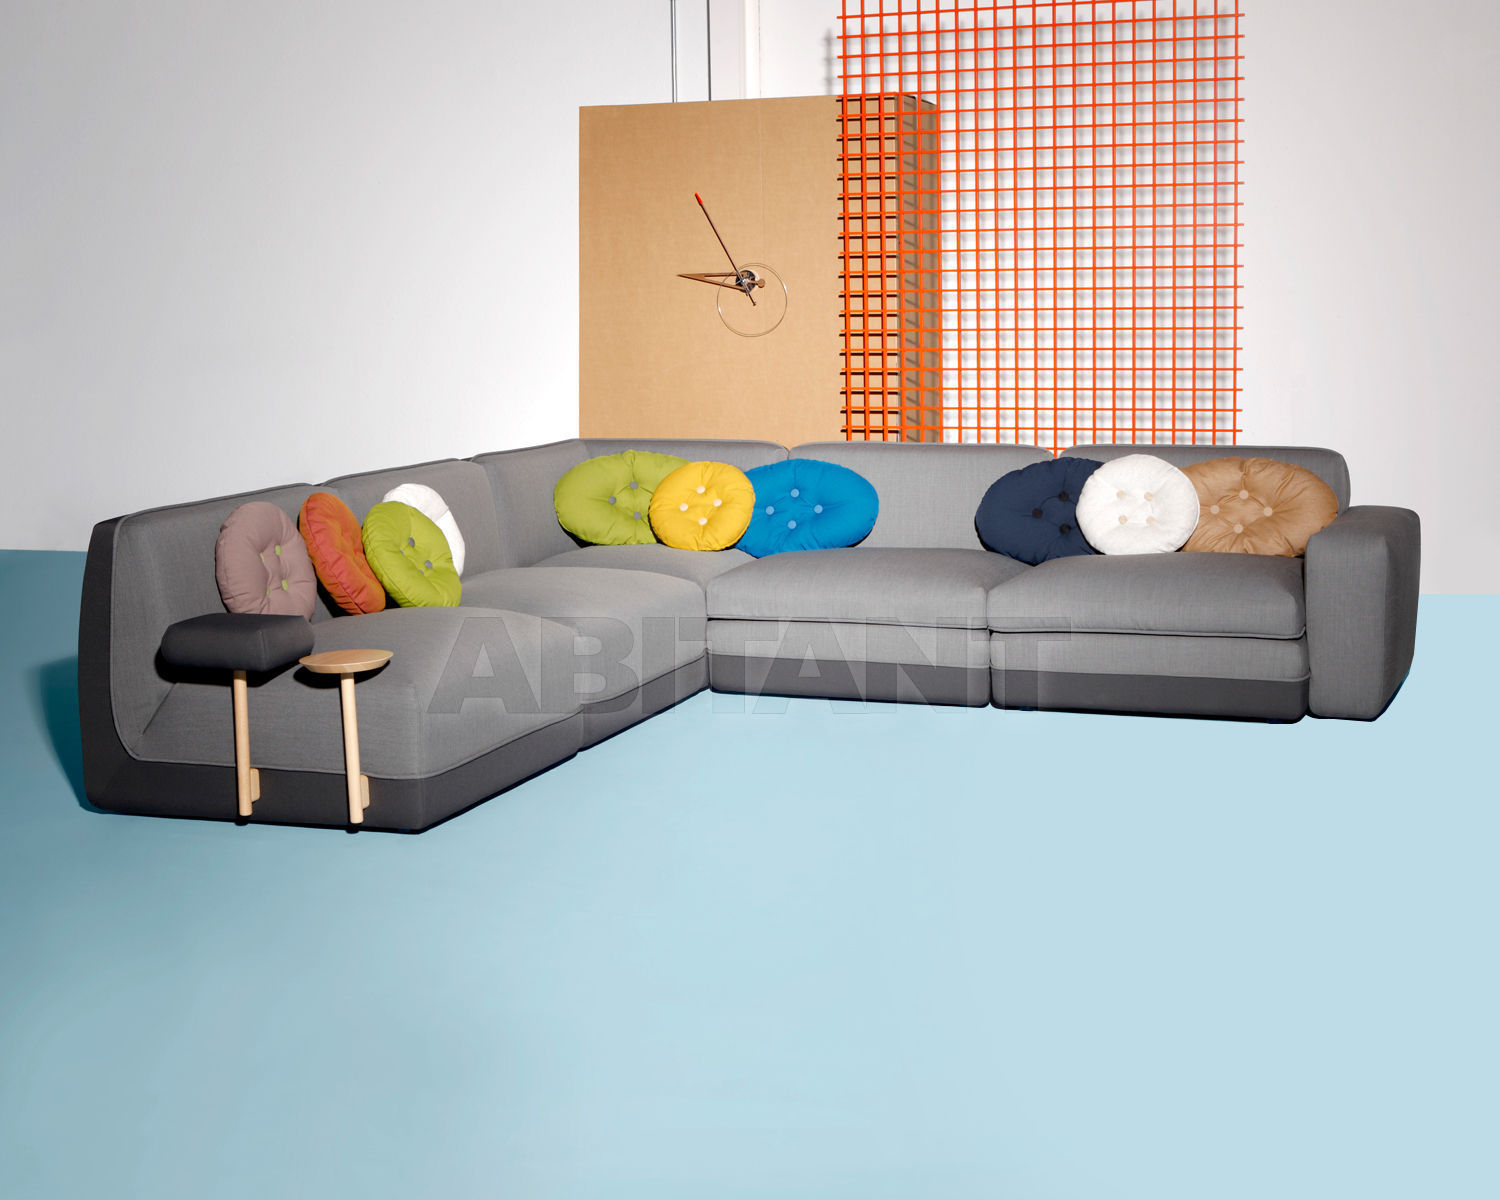 Купить Диван Party Sancal Diseno, S.L. Sofa 4*277.121.K.V+277.161+277.135.D+277.138.K.I